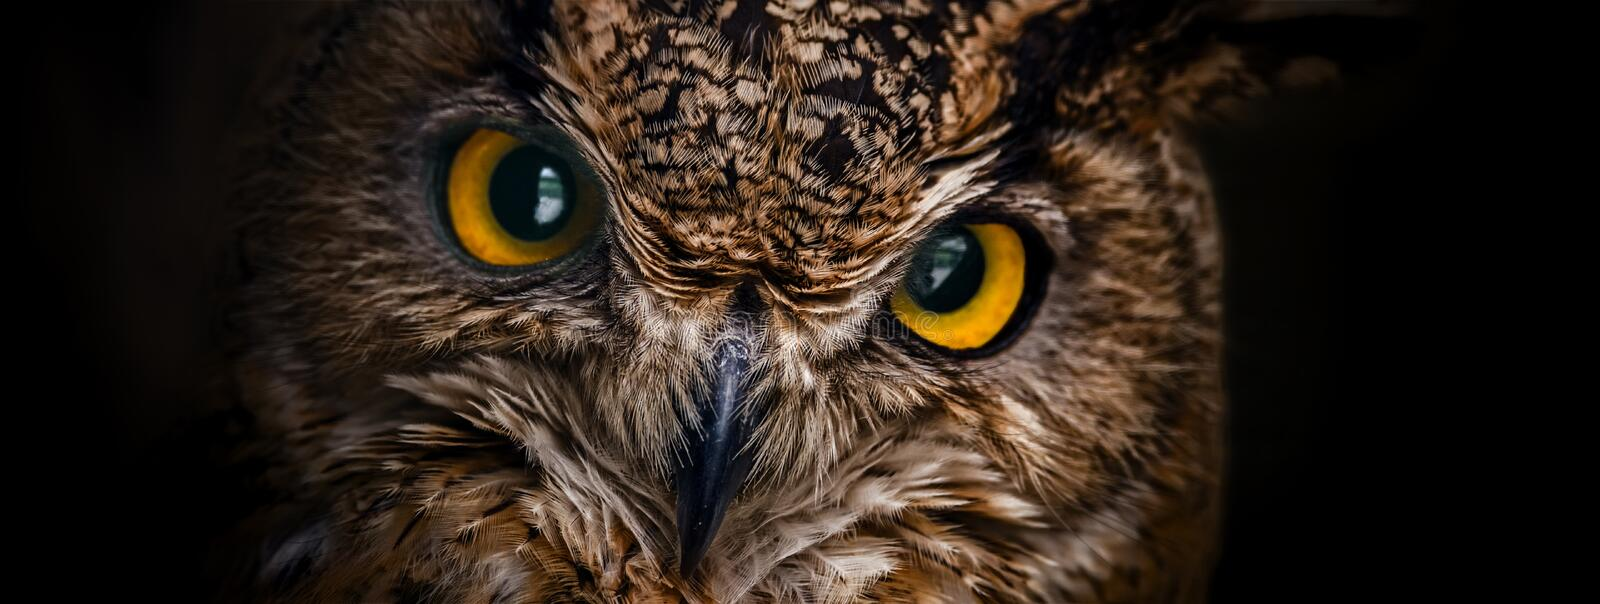 Yellow eyes of horned owl close up on a dark background.  stock images